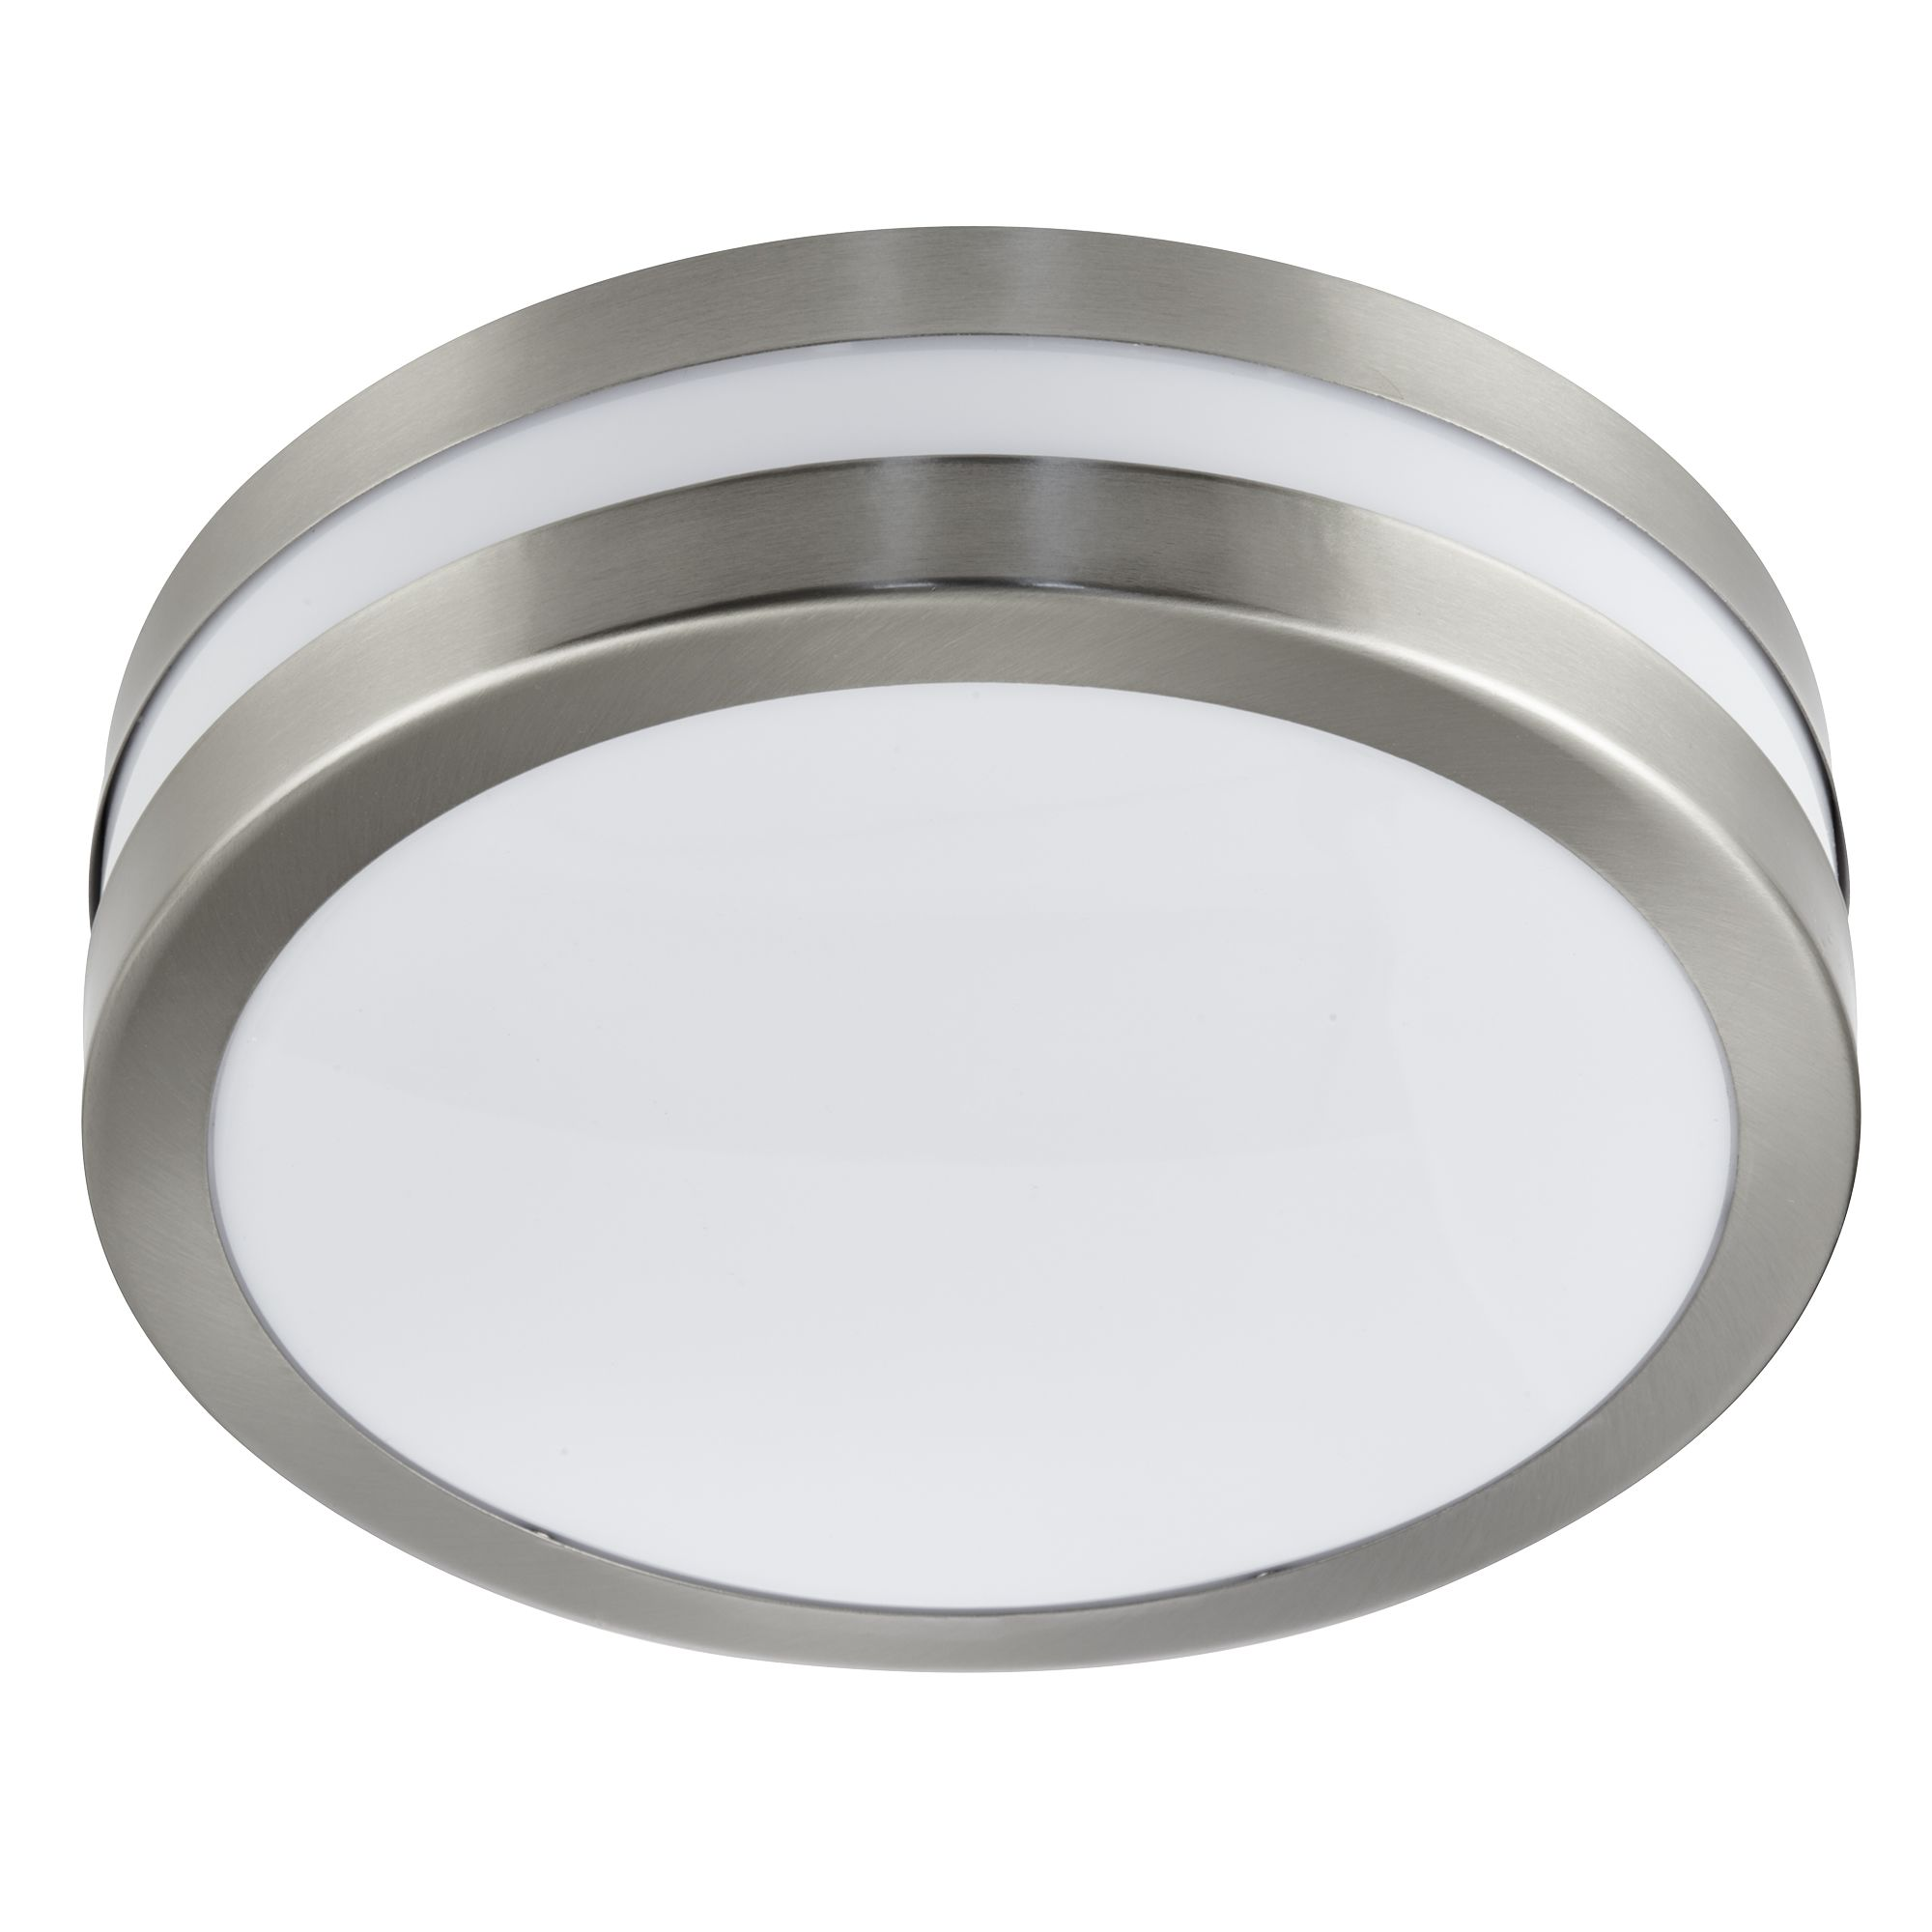 Stainless Steel Ip44 2 Light Flush Outdoor With Polycarbonate Diffuser